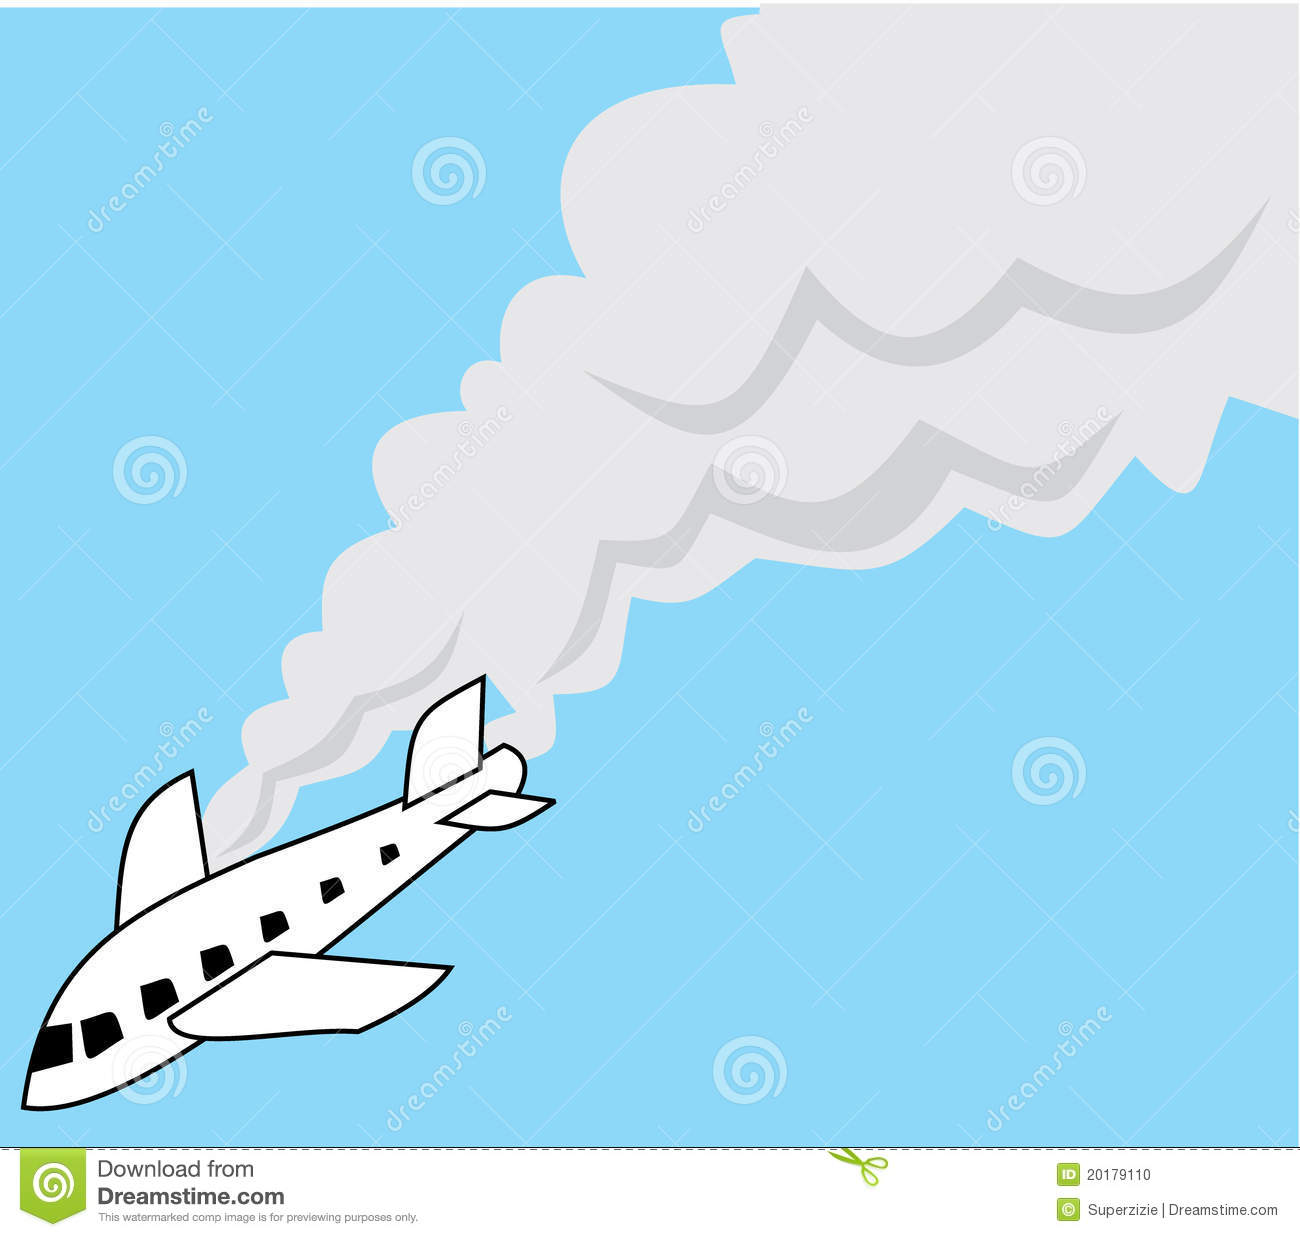 Plane Crash Stock Illustrations.